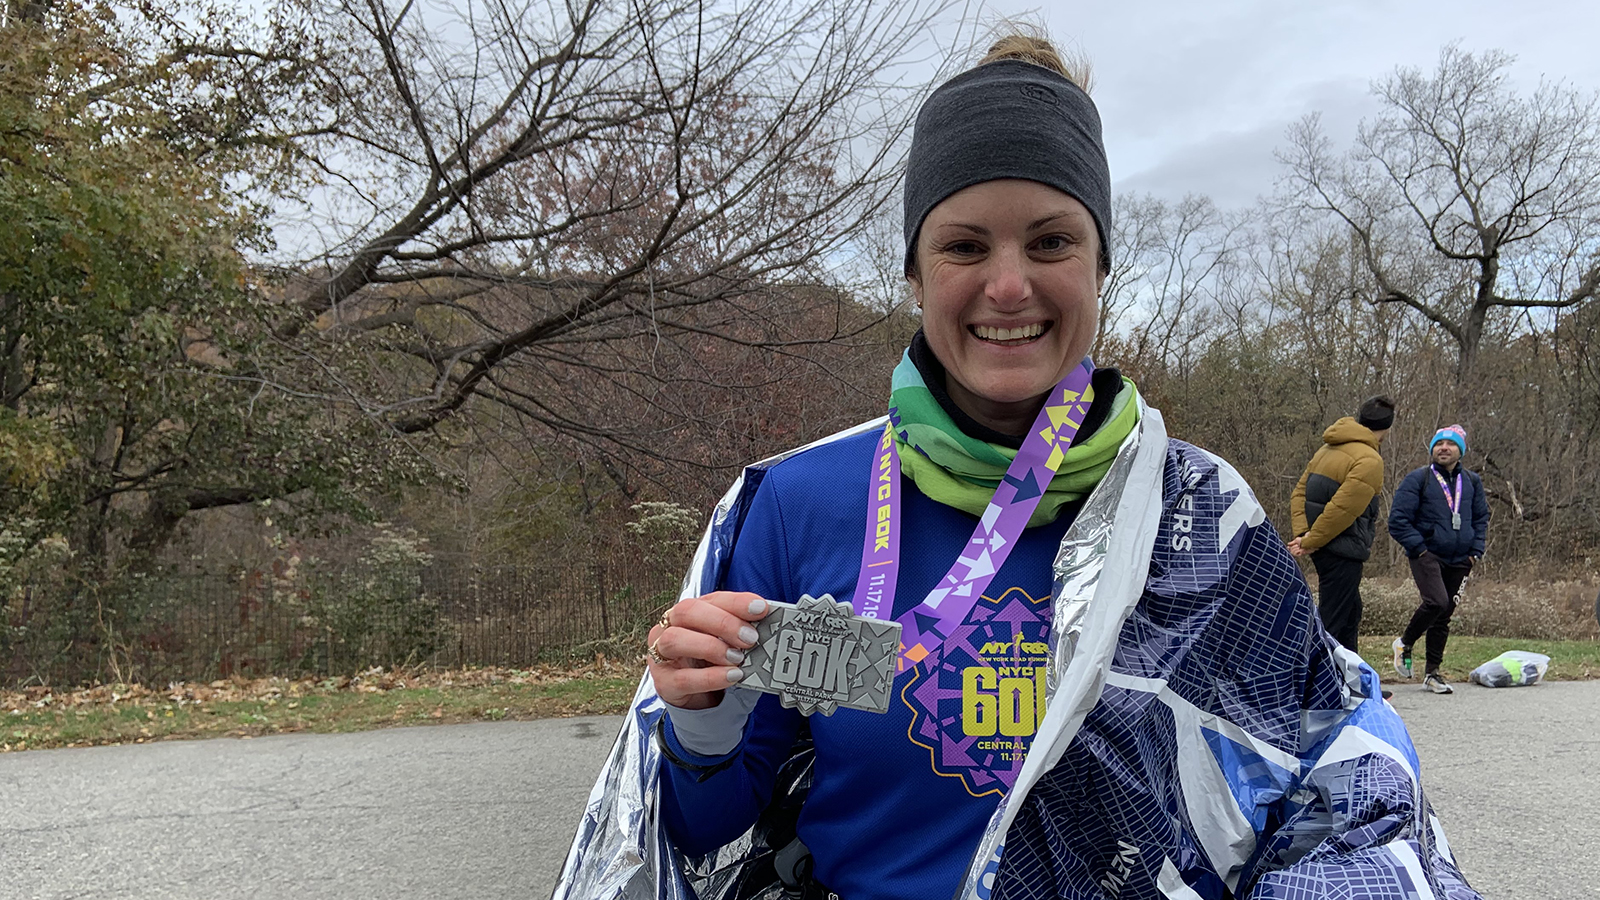 A runner posing with her medal after finishing the NYRR 60K